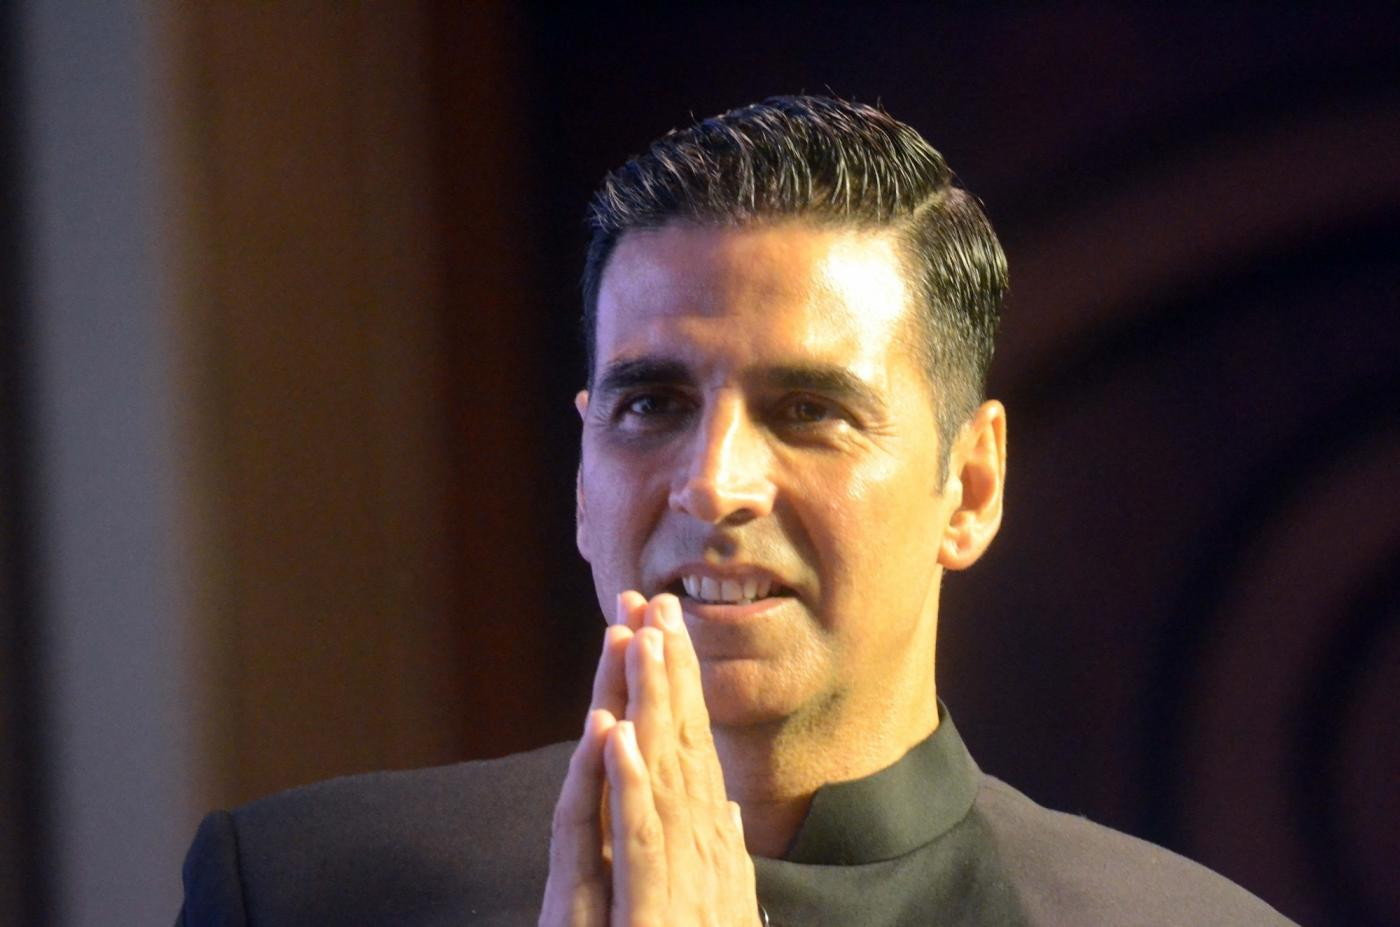 Mumbai: Actor Akshay Kumar during a programme on the occasion of the 'World Toilet Day' in Mumbai on Nov 19, 2018. (Photo: IANS) by .